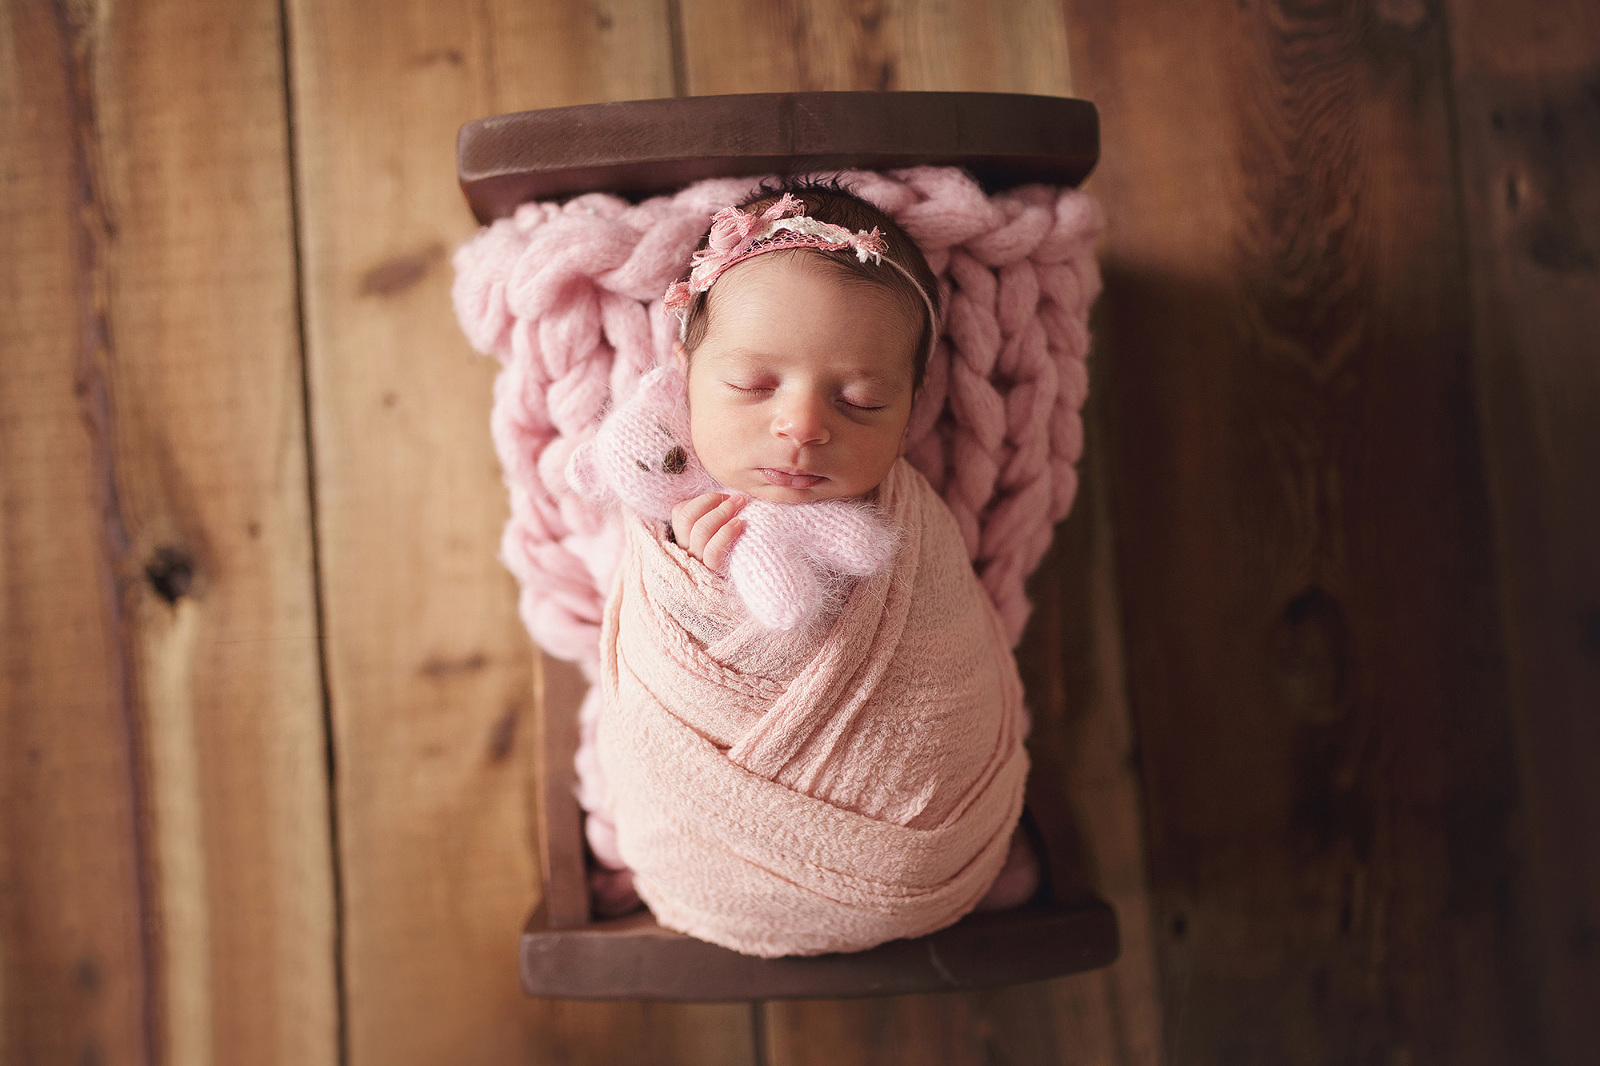 Strathroy newborn in photography session